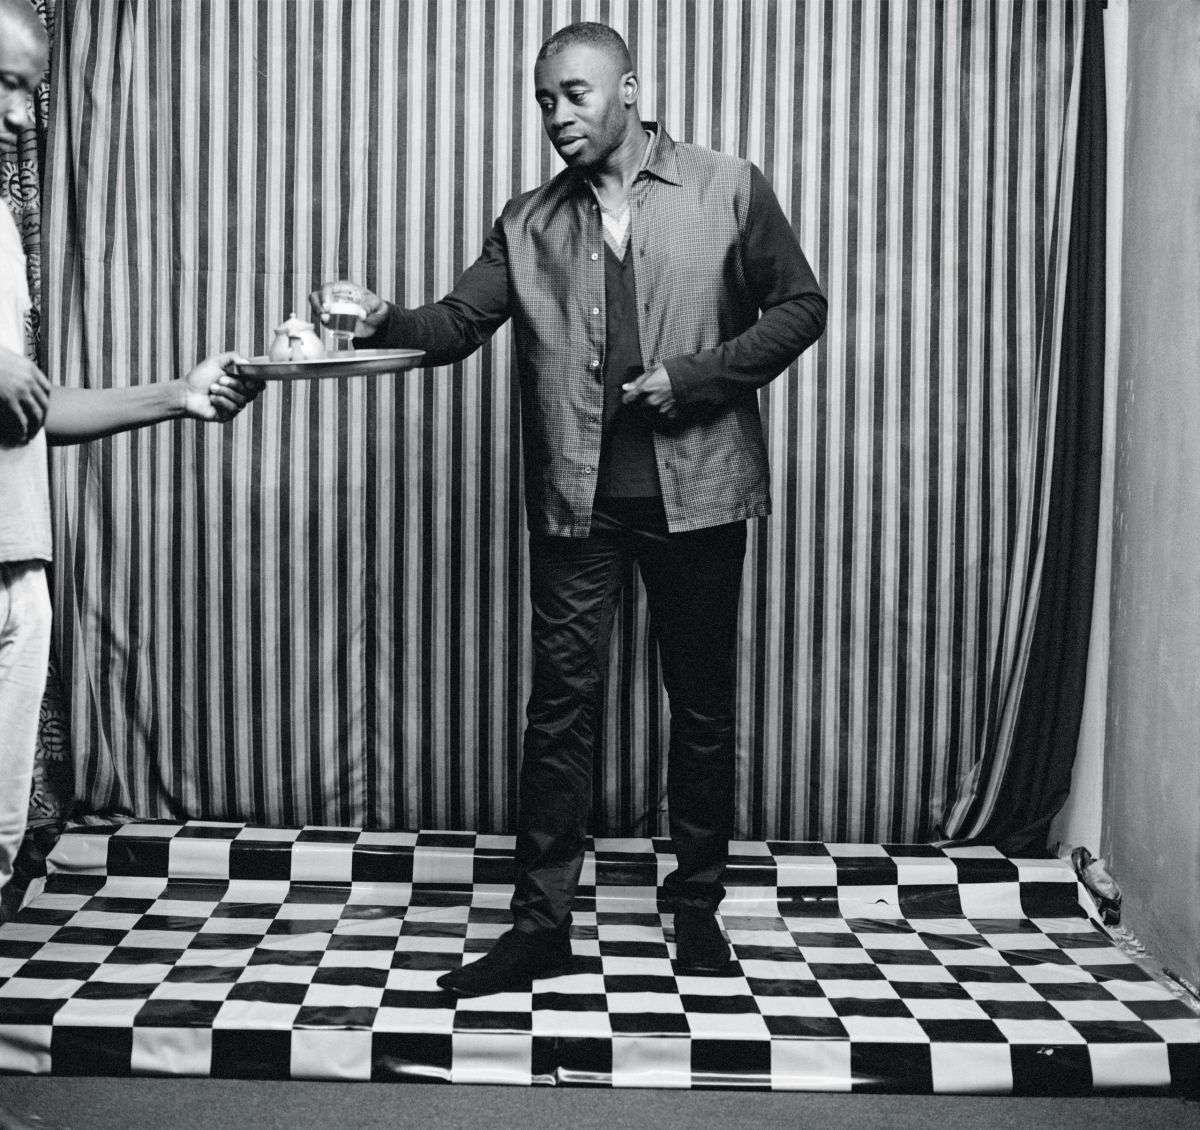 Chris Ofili. Photo by Malick Sidibé